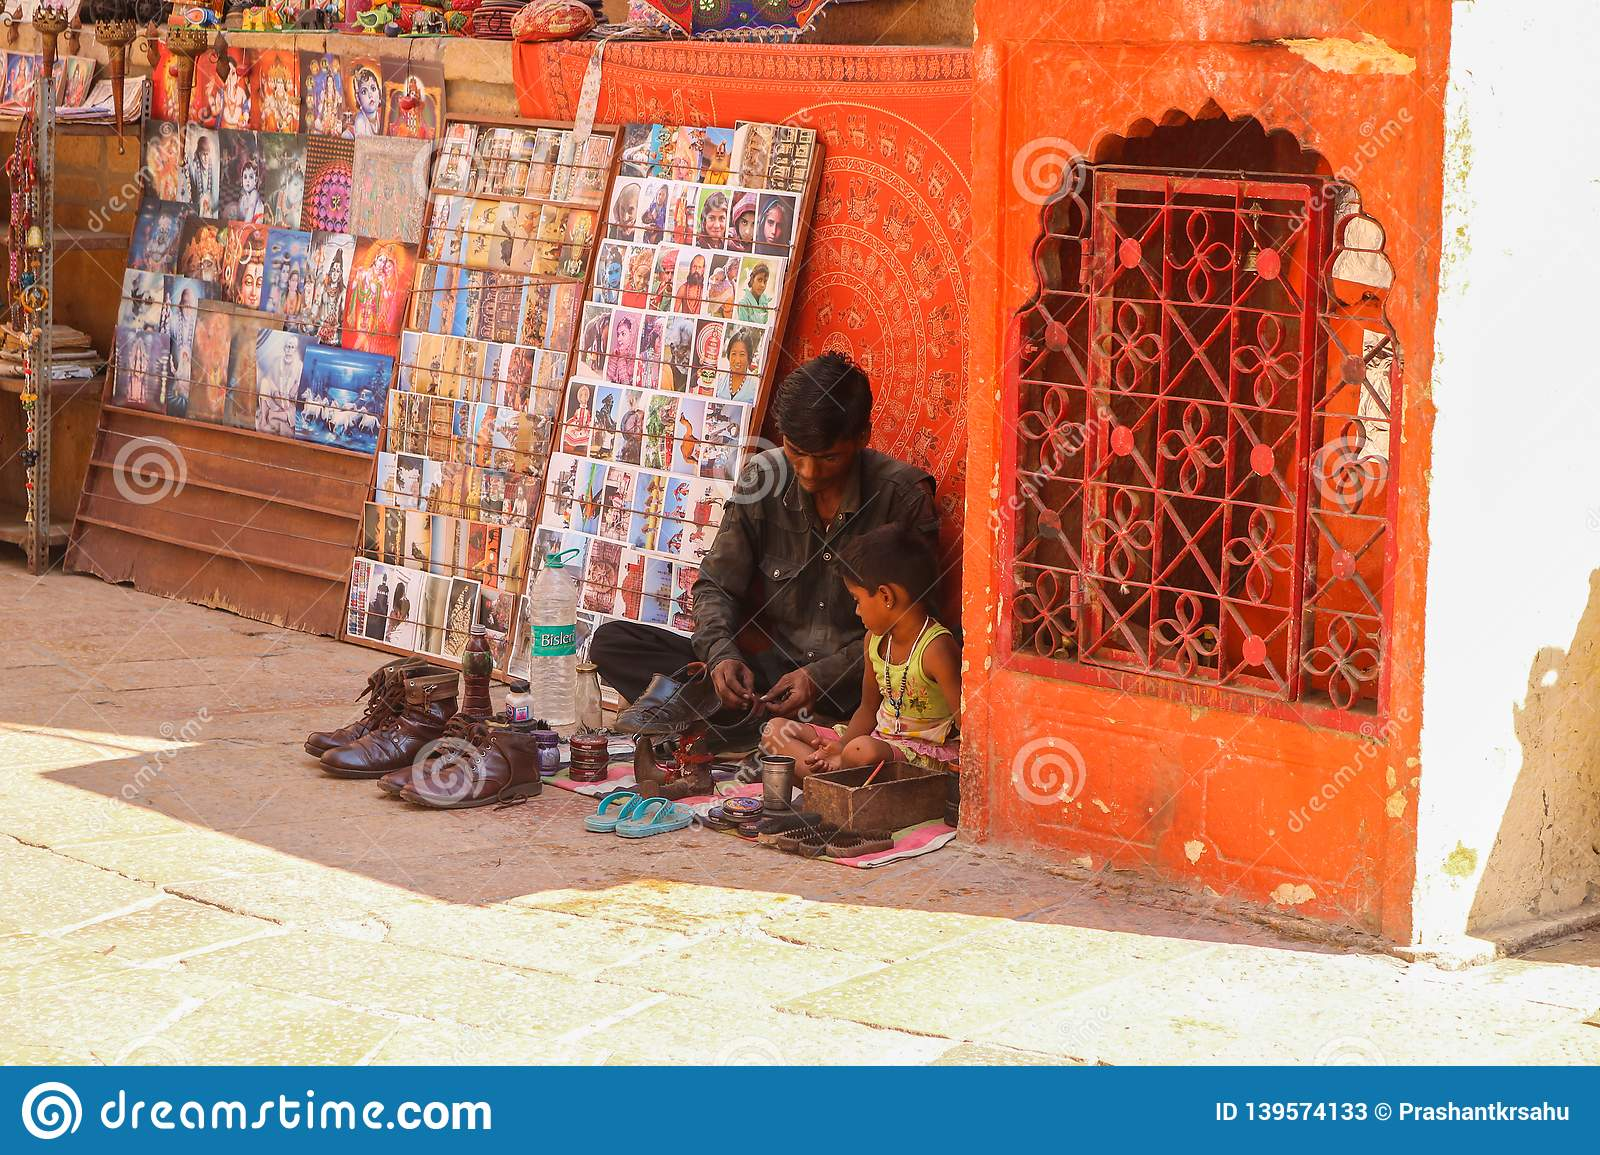 Shoemaker with his child setting at the street of Jaisalmer